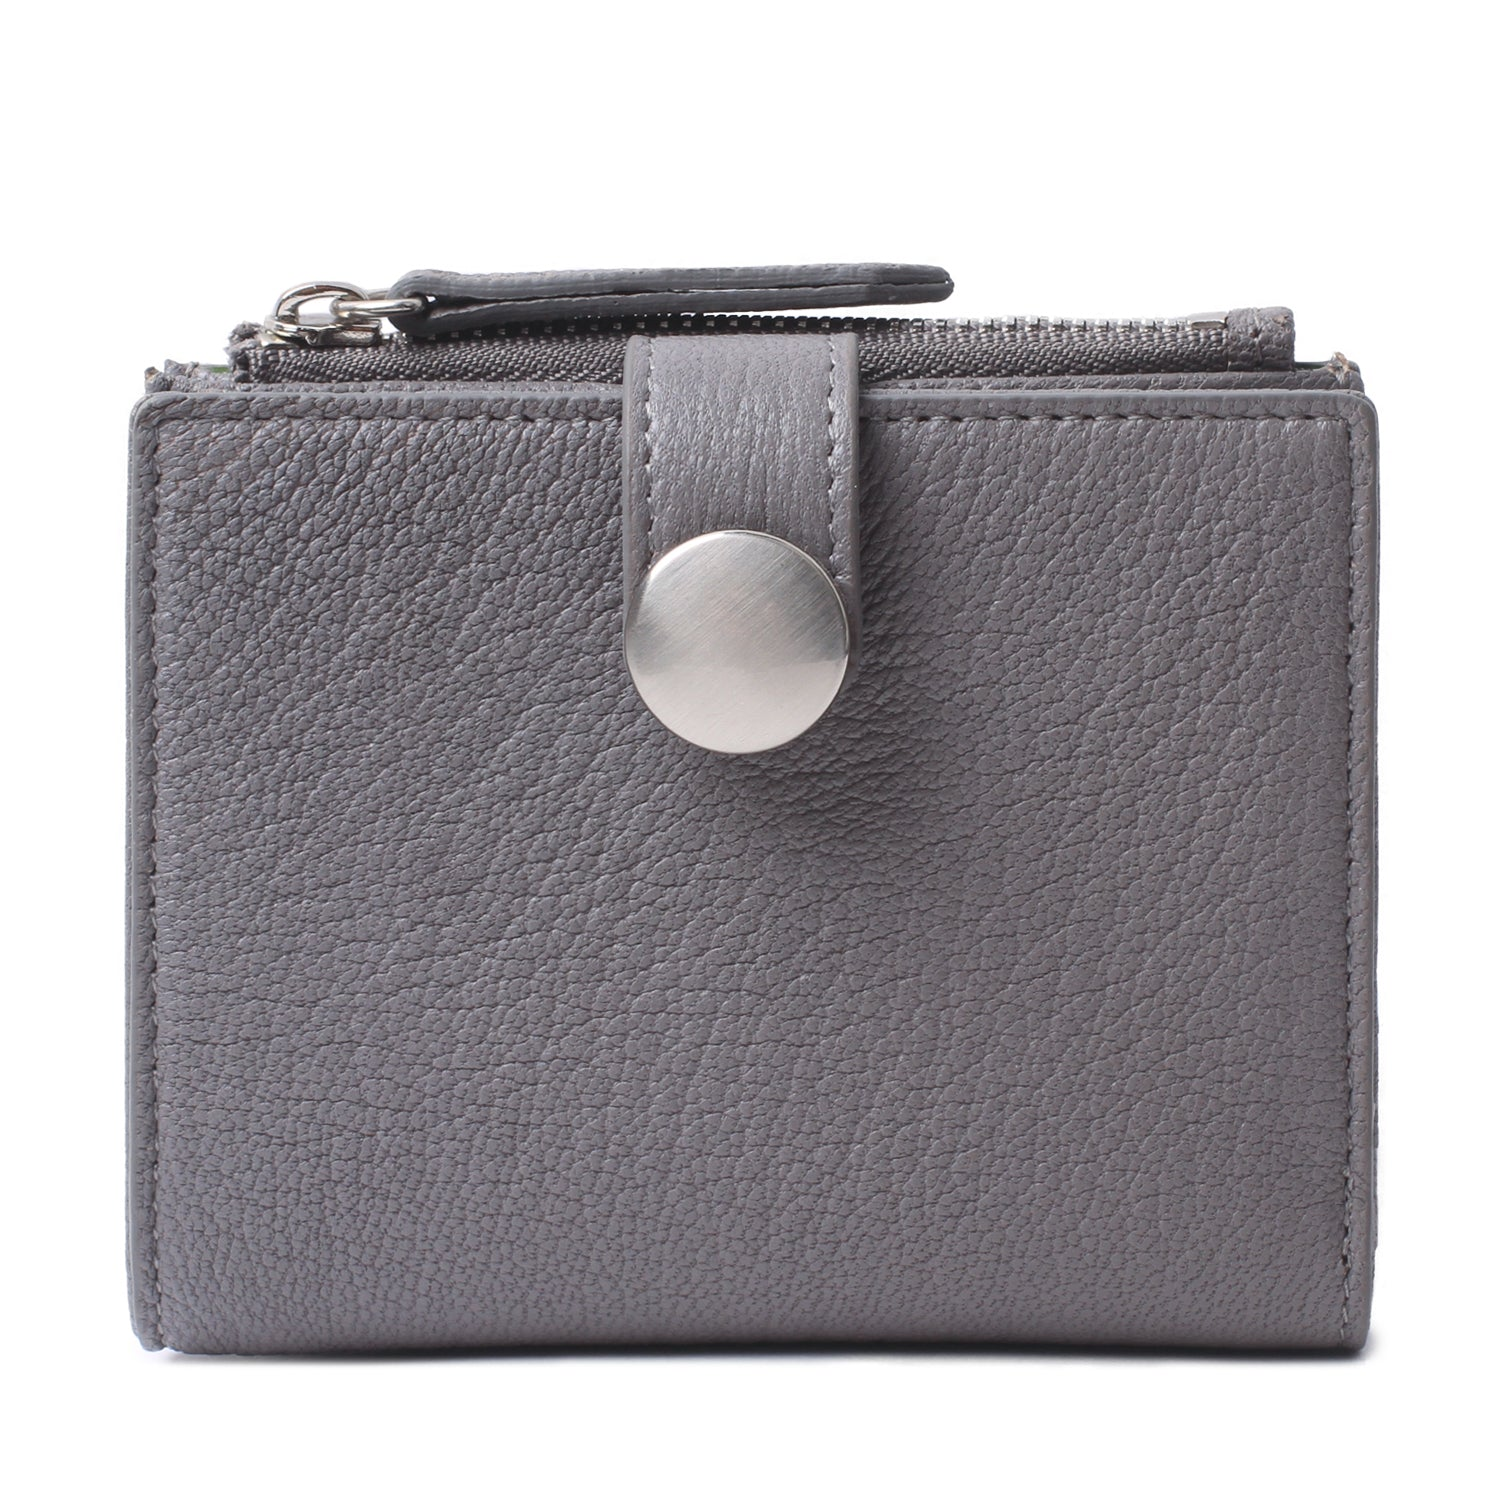 Katya Small Leather Bifold Wallet and Zipper Coin Purse for Women Gray